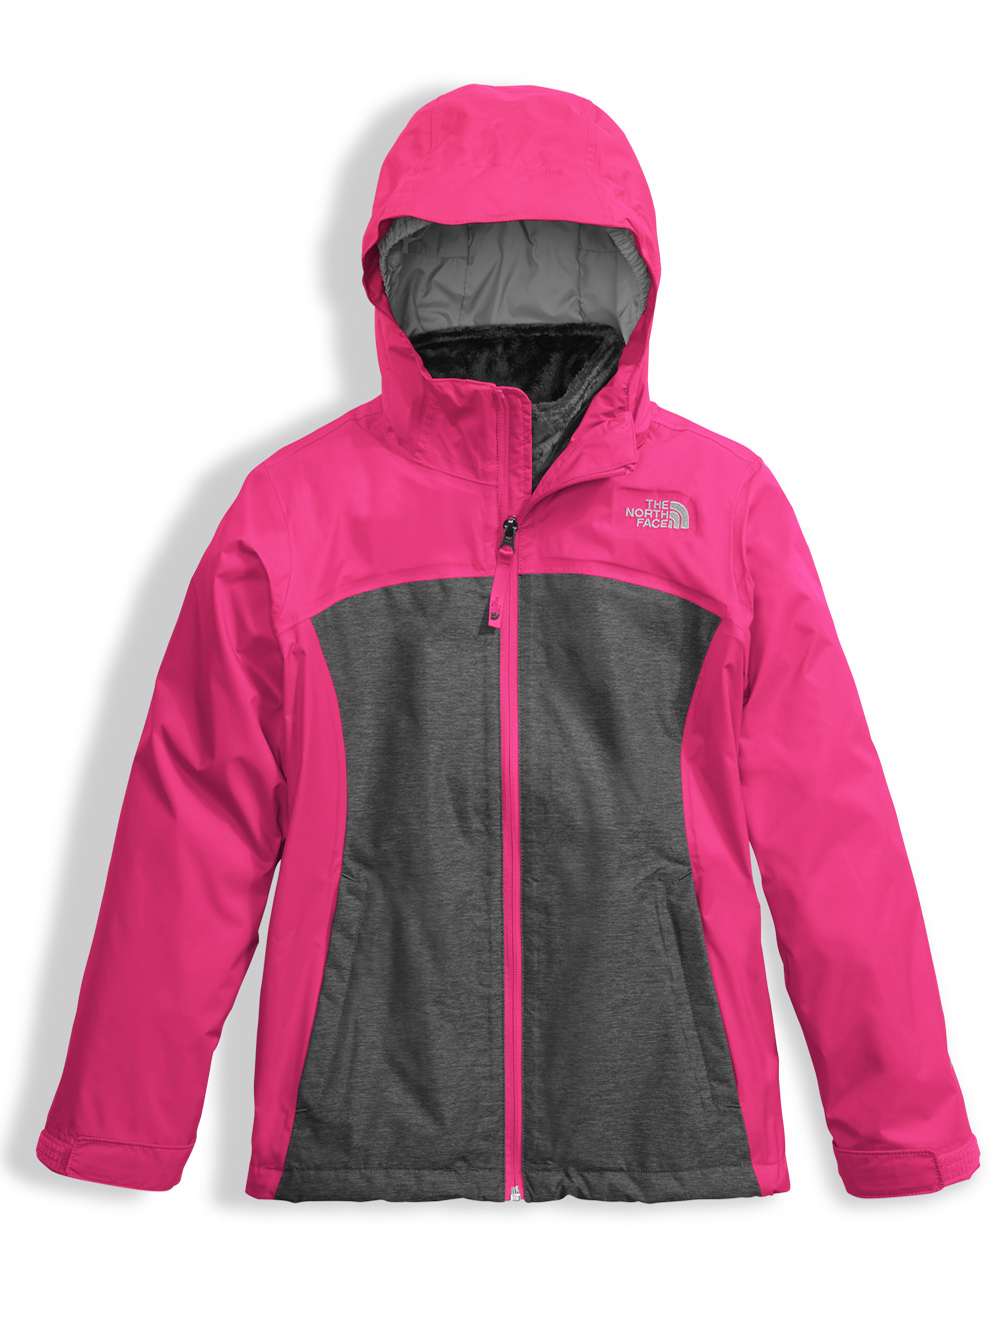 cd5872d85 Little Girls' Osolita Jacket by The North Face in bellflower purple and  petticoat pink